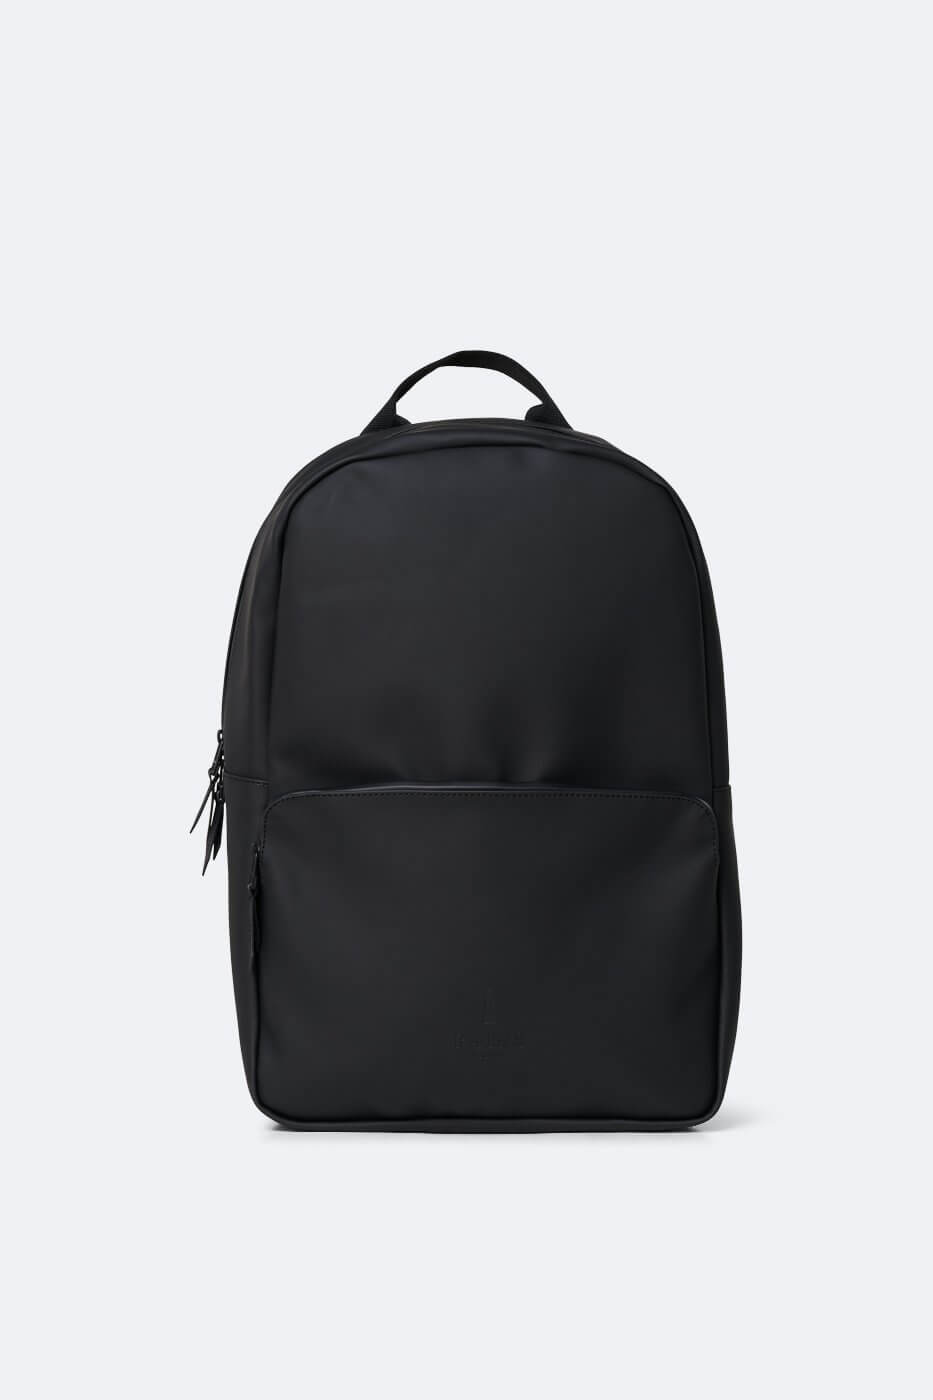 Rains - 1284 - Field Bag reppu - 01 Black